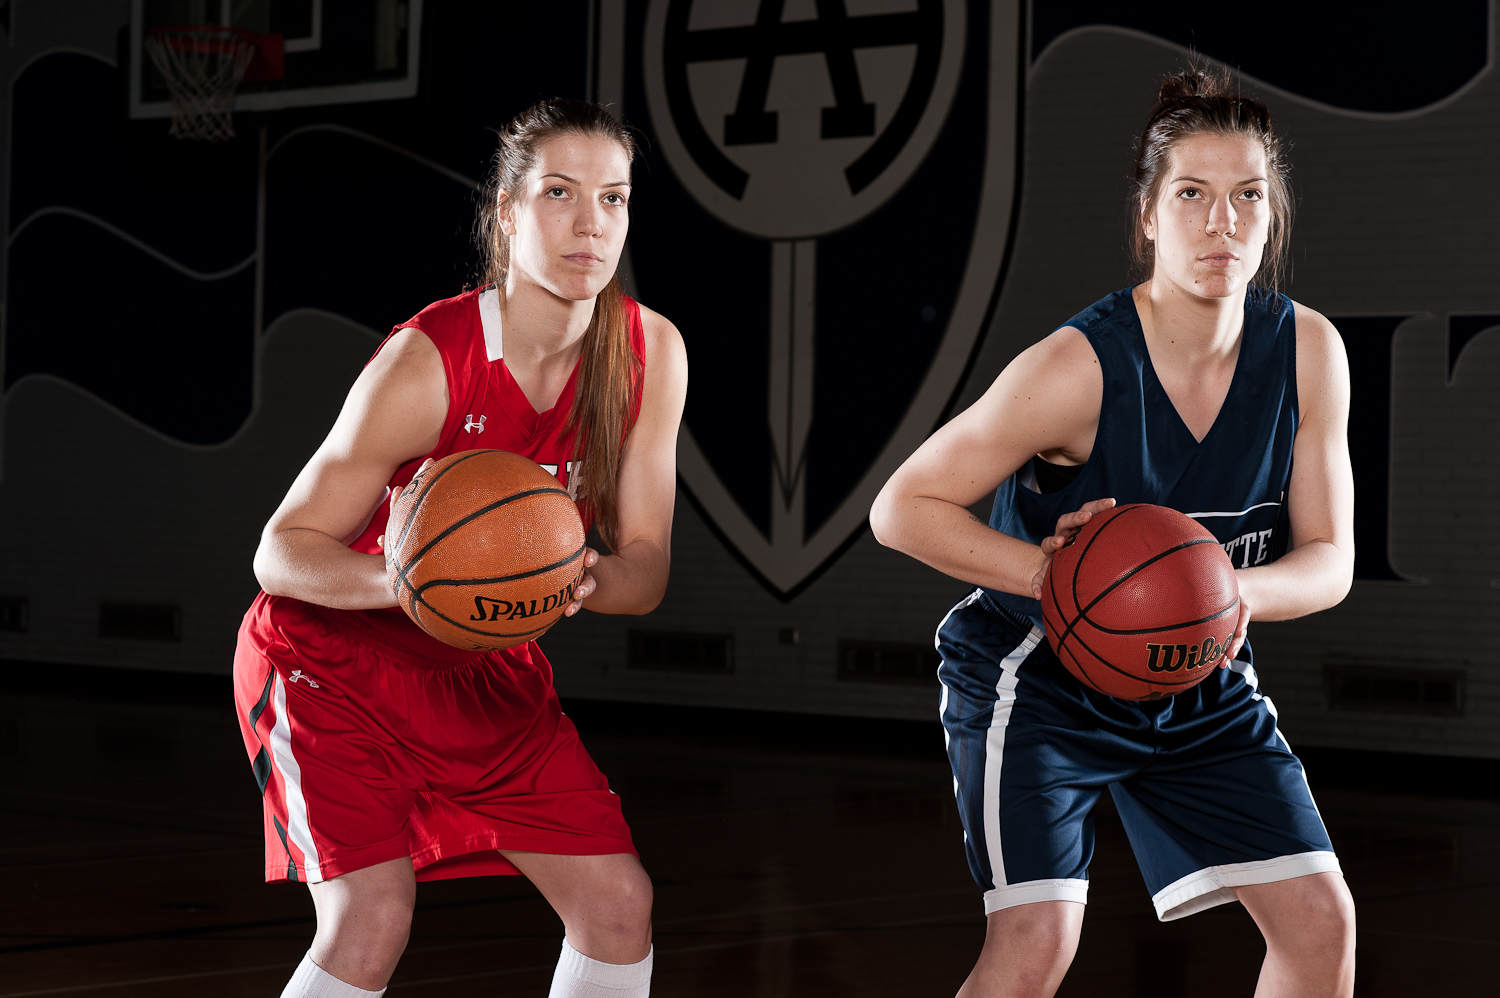 michelle-katherine-plouffe-sean-williams-basketball-sports-editorial-commercial-portrait-photographer-photography-3.jpg